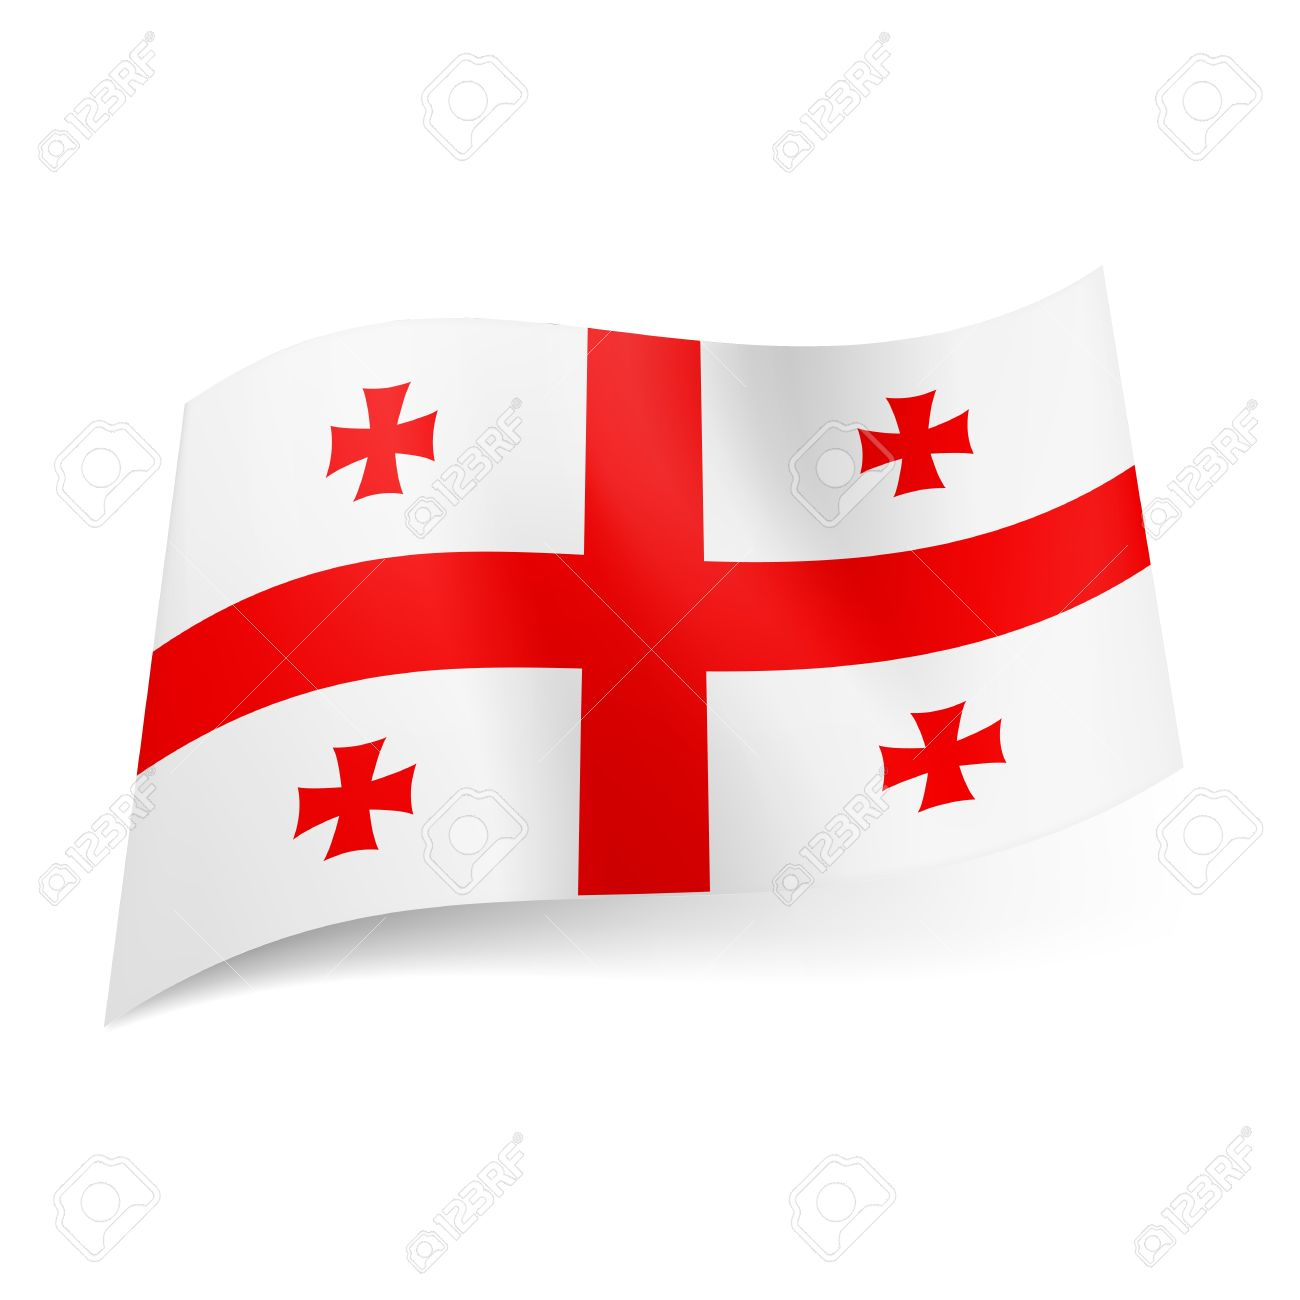 Flag of England Wikipedia